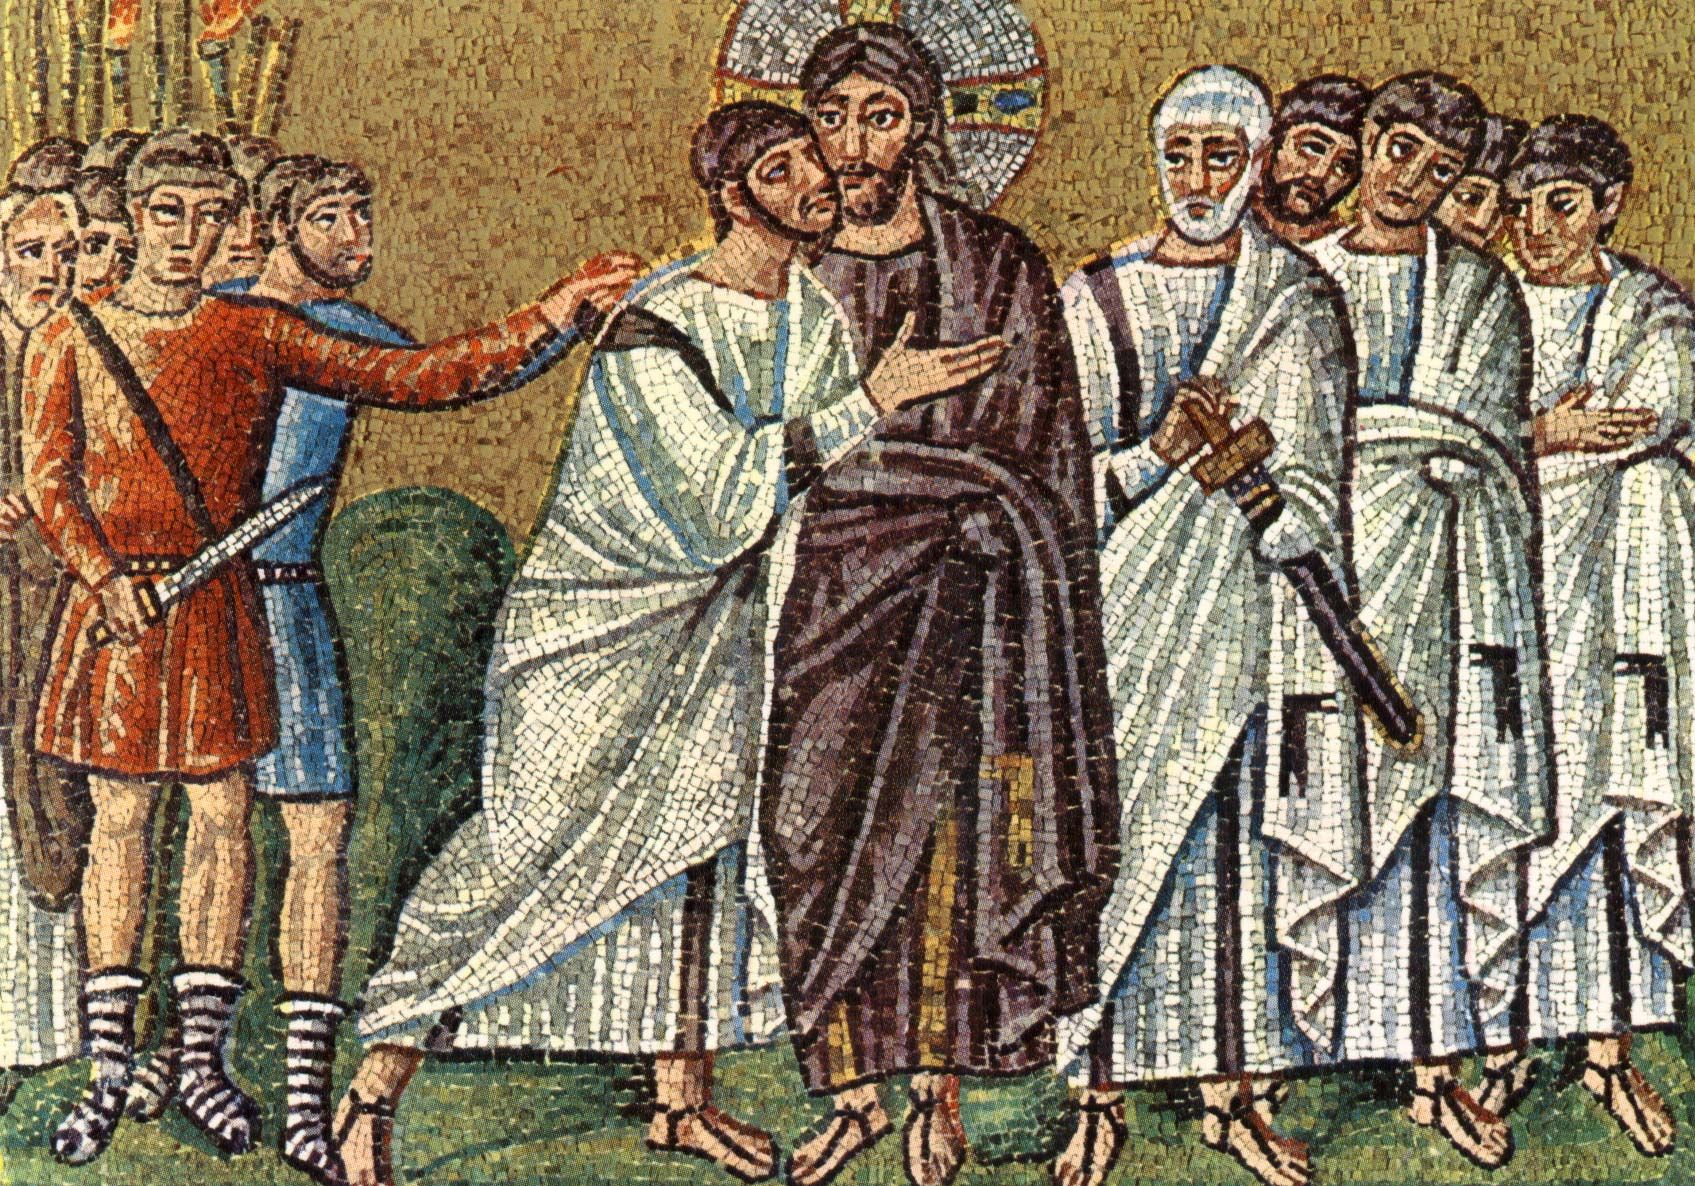 Is Male Cowardice the Story of Christ's Crucifixion?